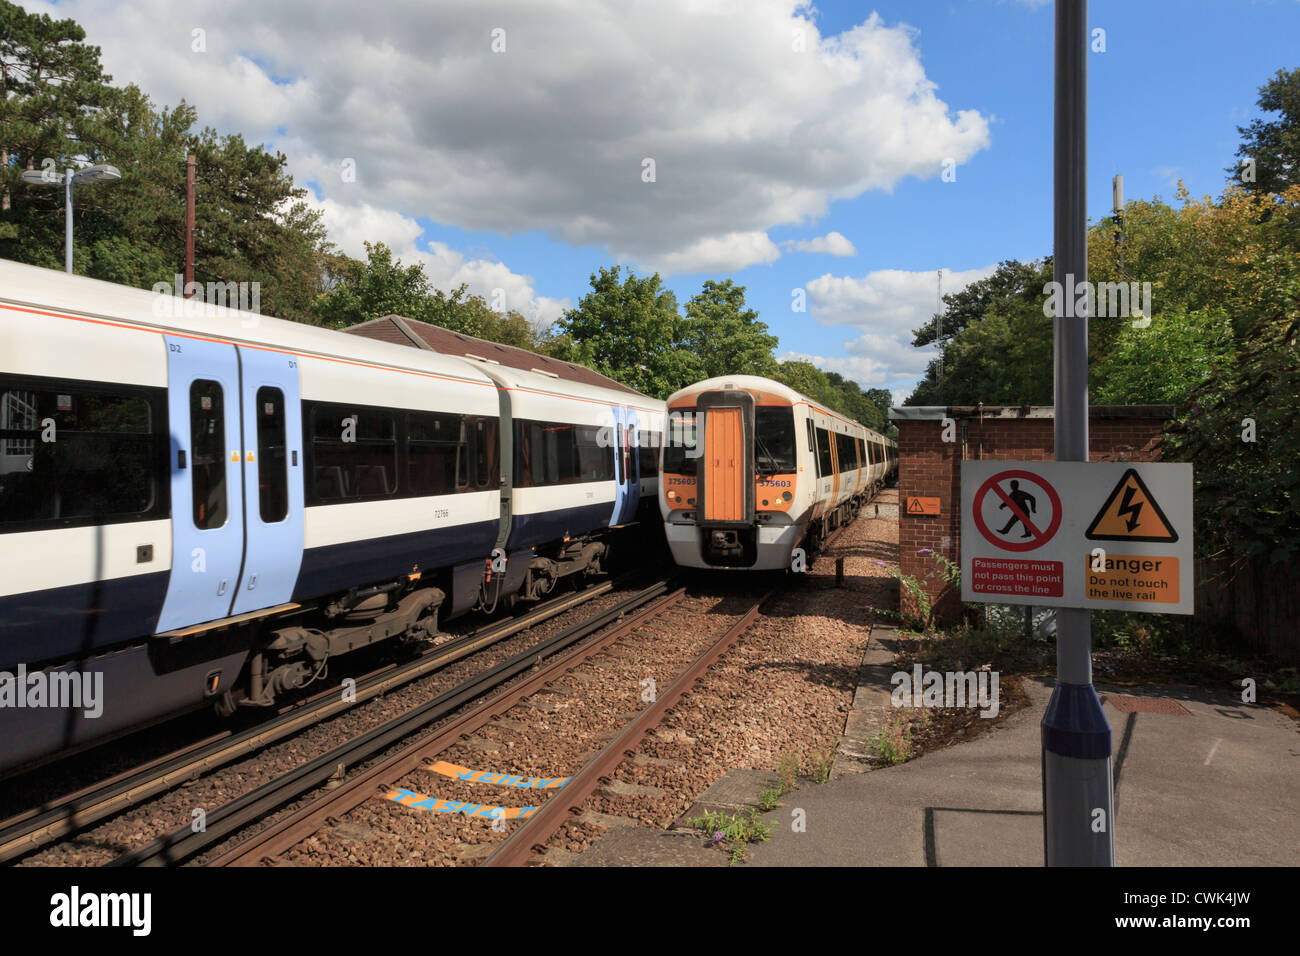 Two electric express trains passing on electrified railway with danger sign warning not to cross tracks. England - Stock Image